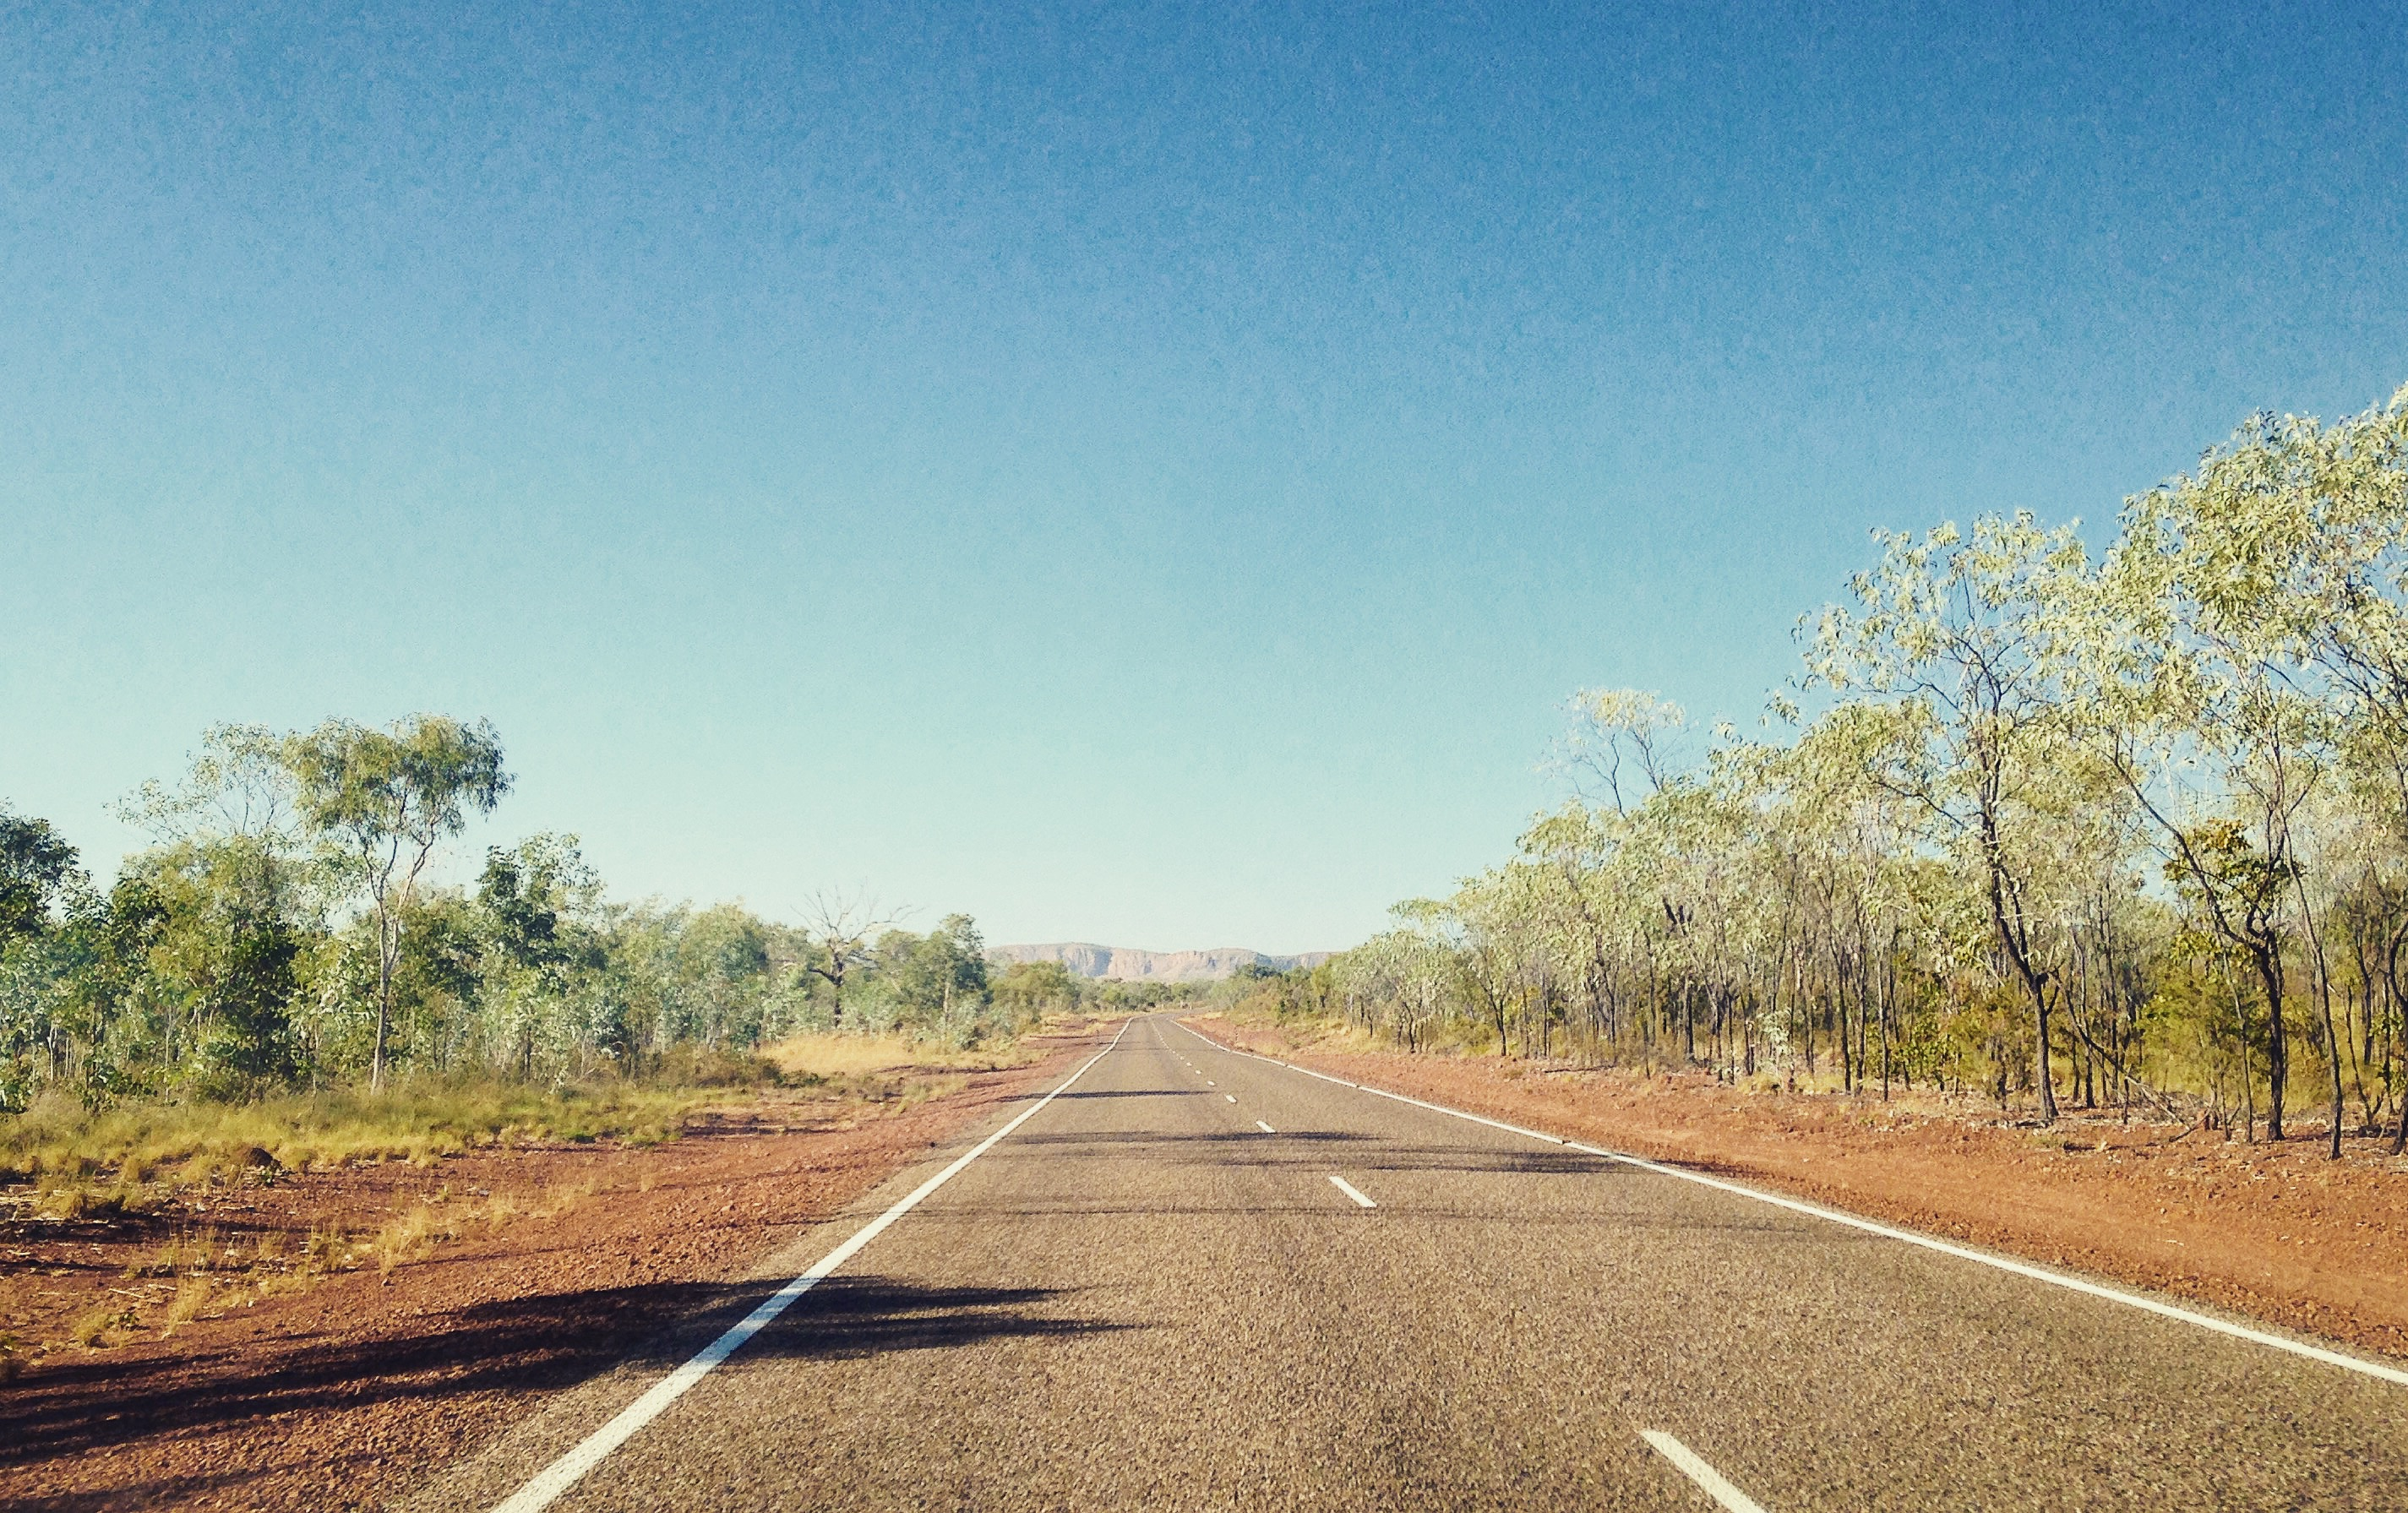 Sunday Read part 1: Cross Country Road Trip Kununurra –  Cooktown